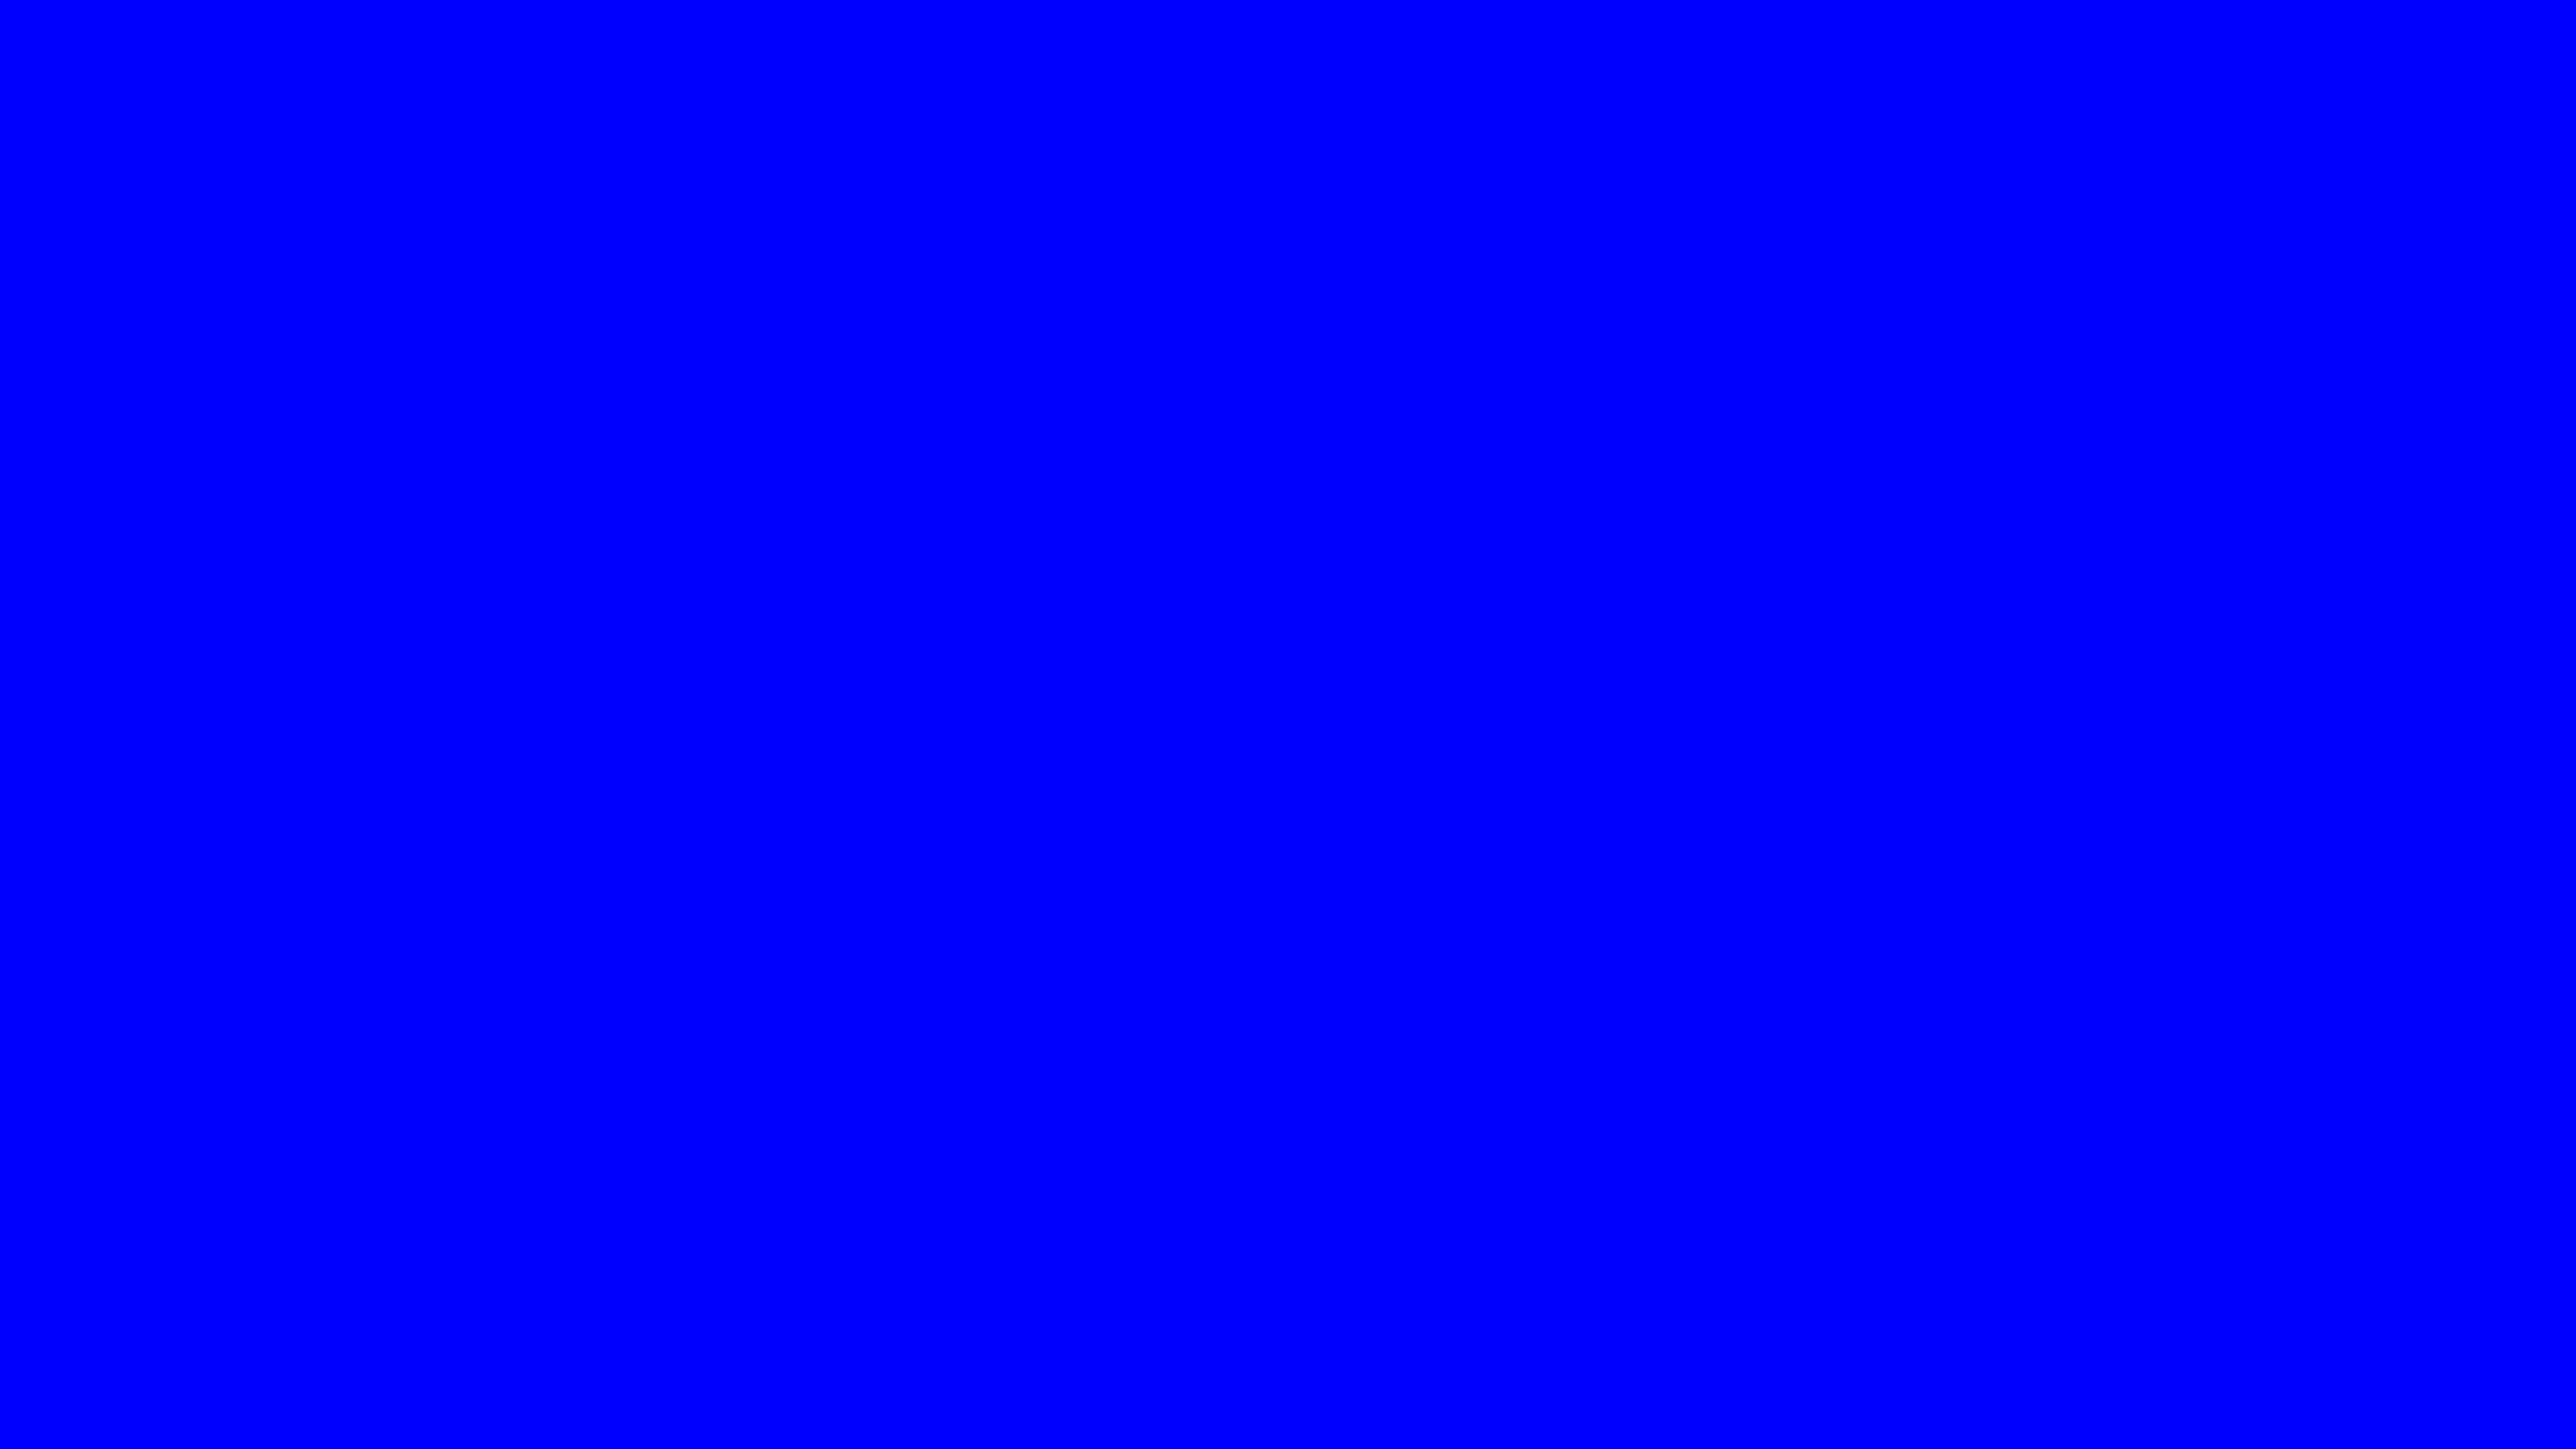 3840x2160 Blue Solid Color Background